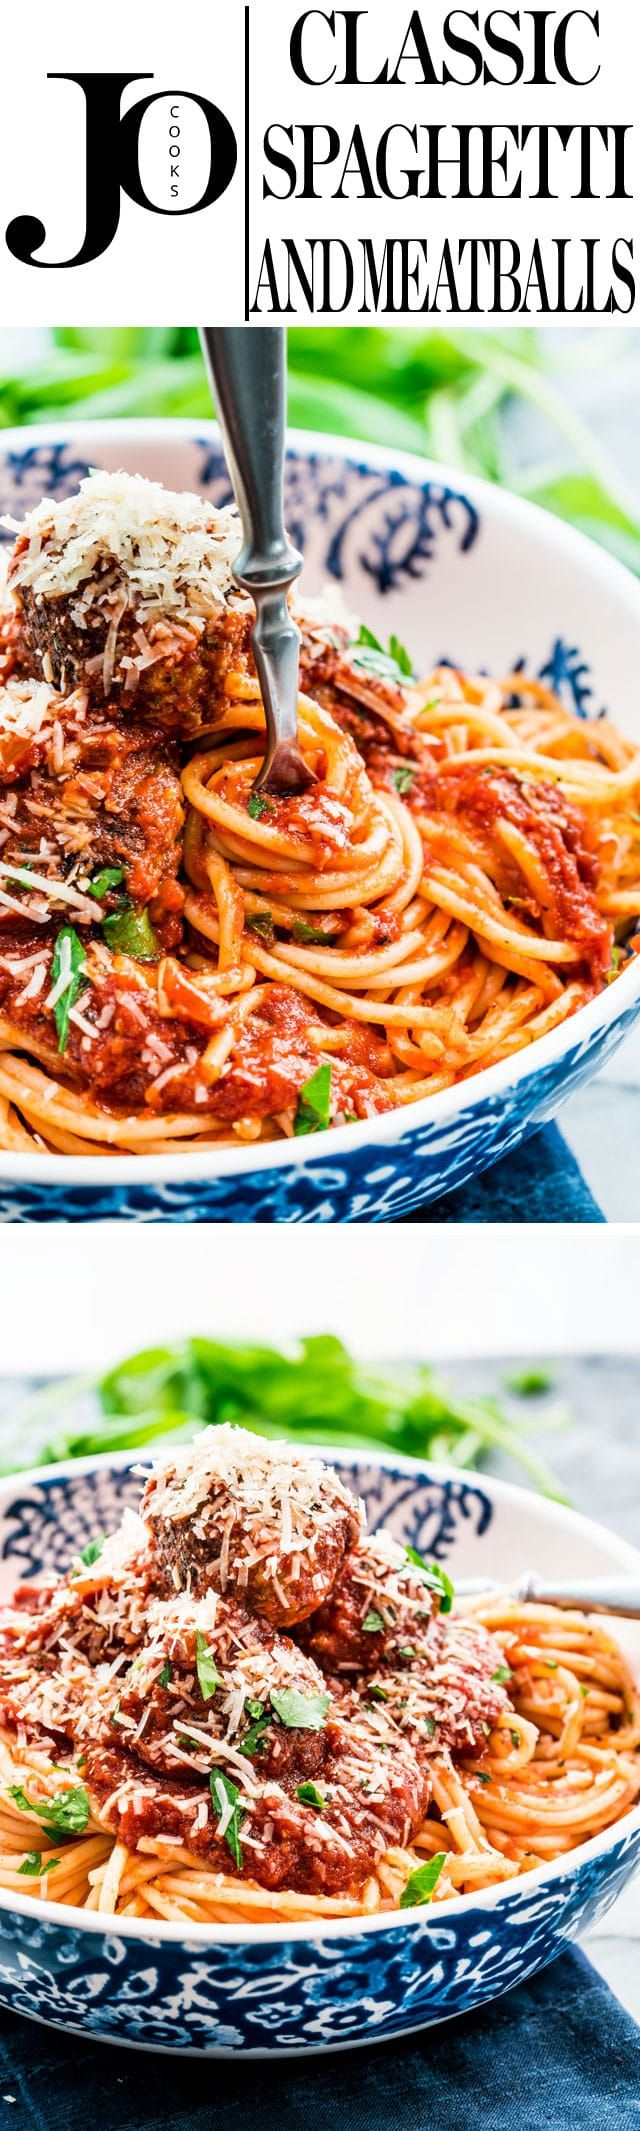 Classic Spaghetti and Meatballs - a classic comfort food and pretty much everyone's favorite. This dish with delicious and hearty meatballs in a simple flavorful and tasty tomato sauce served over spaghetti. www.jocooks.com #spaghetti